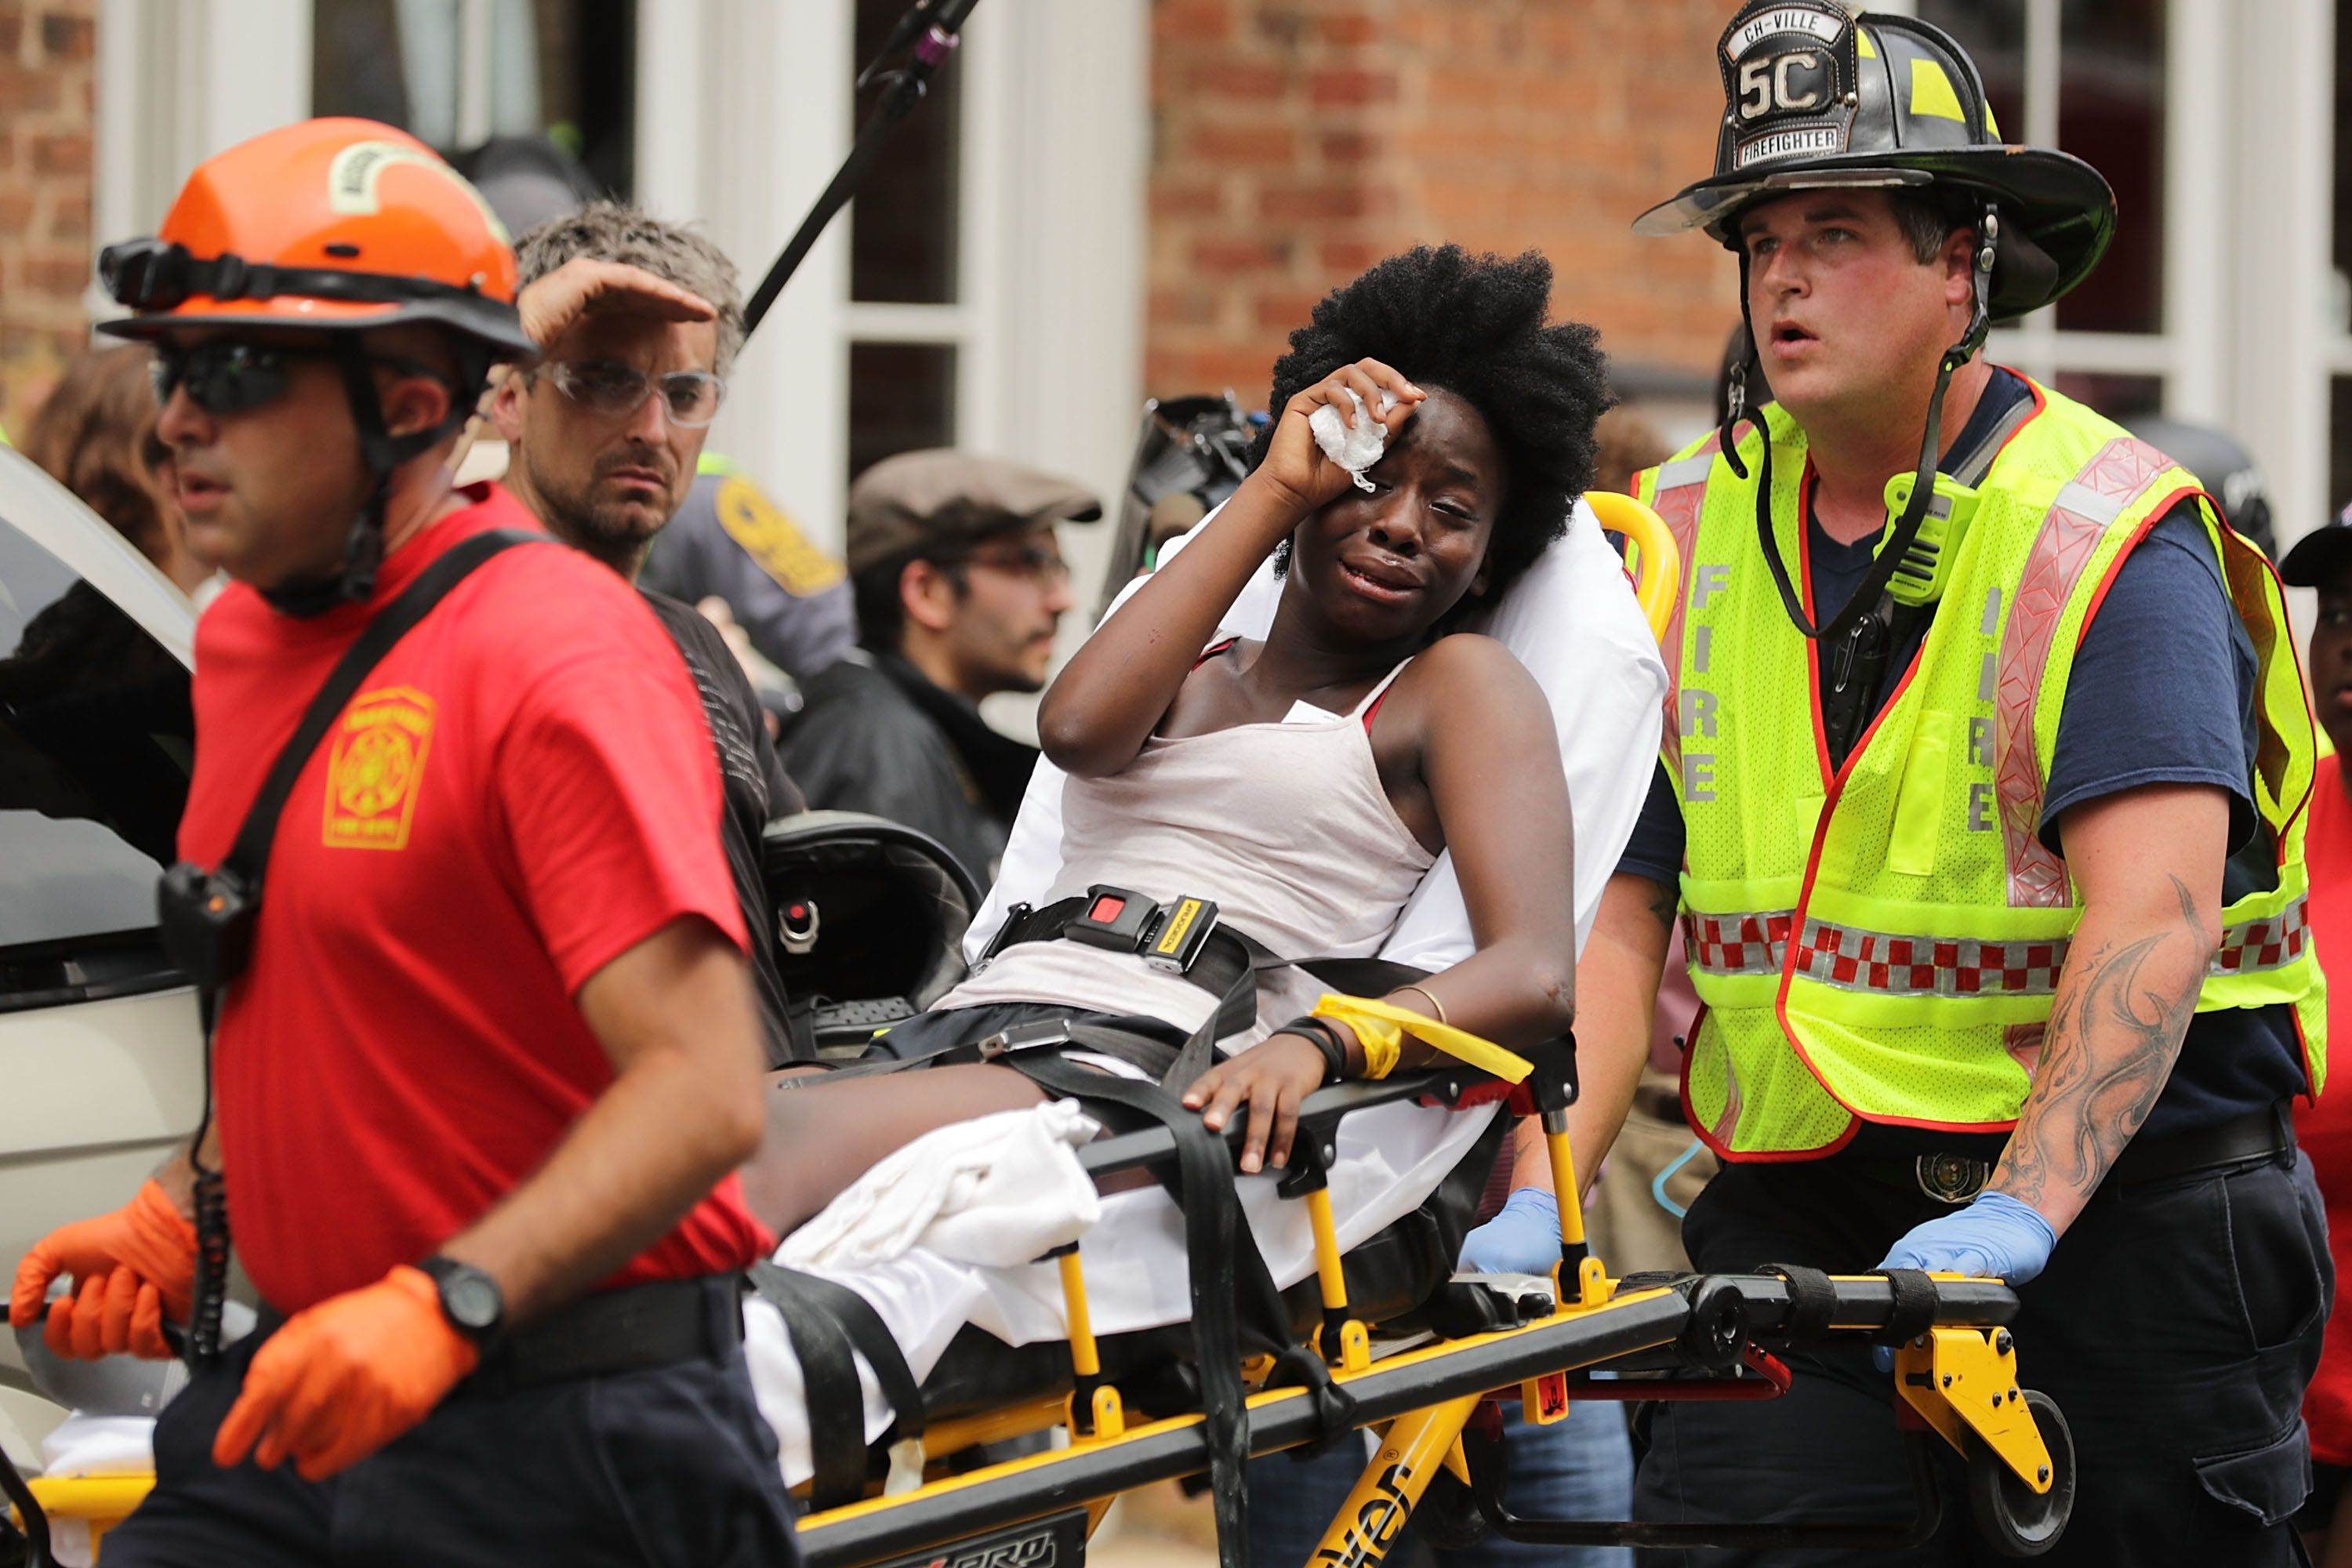 GettyImages-830784976-1502571839.jpg?quality=.8&height=533 A UVA Student Organizer Recounts His Last 24 Hours Of Counter-Protest In Charlottesville - MTV Music News